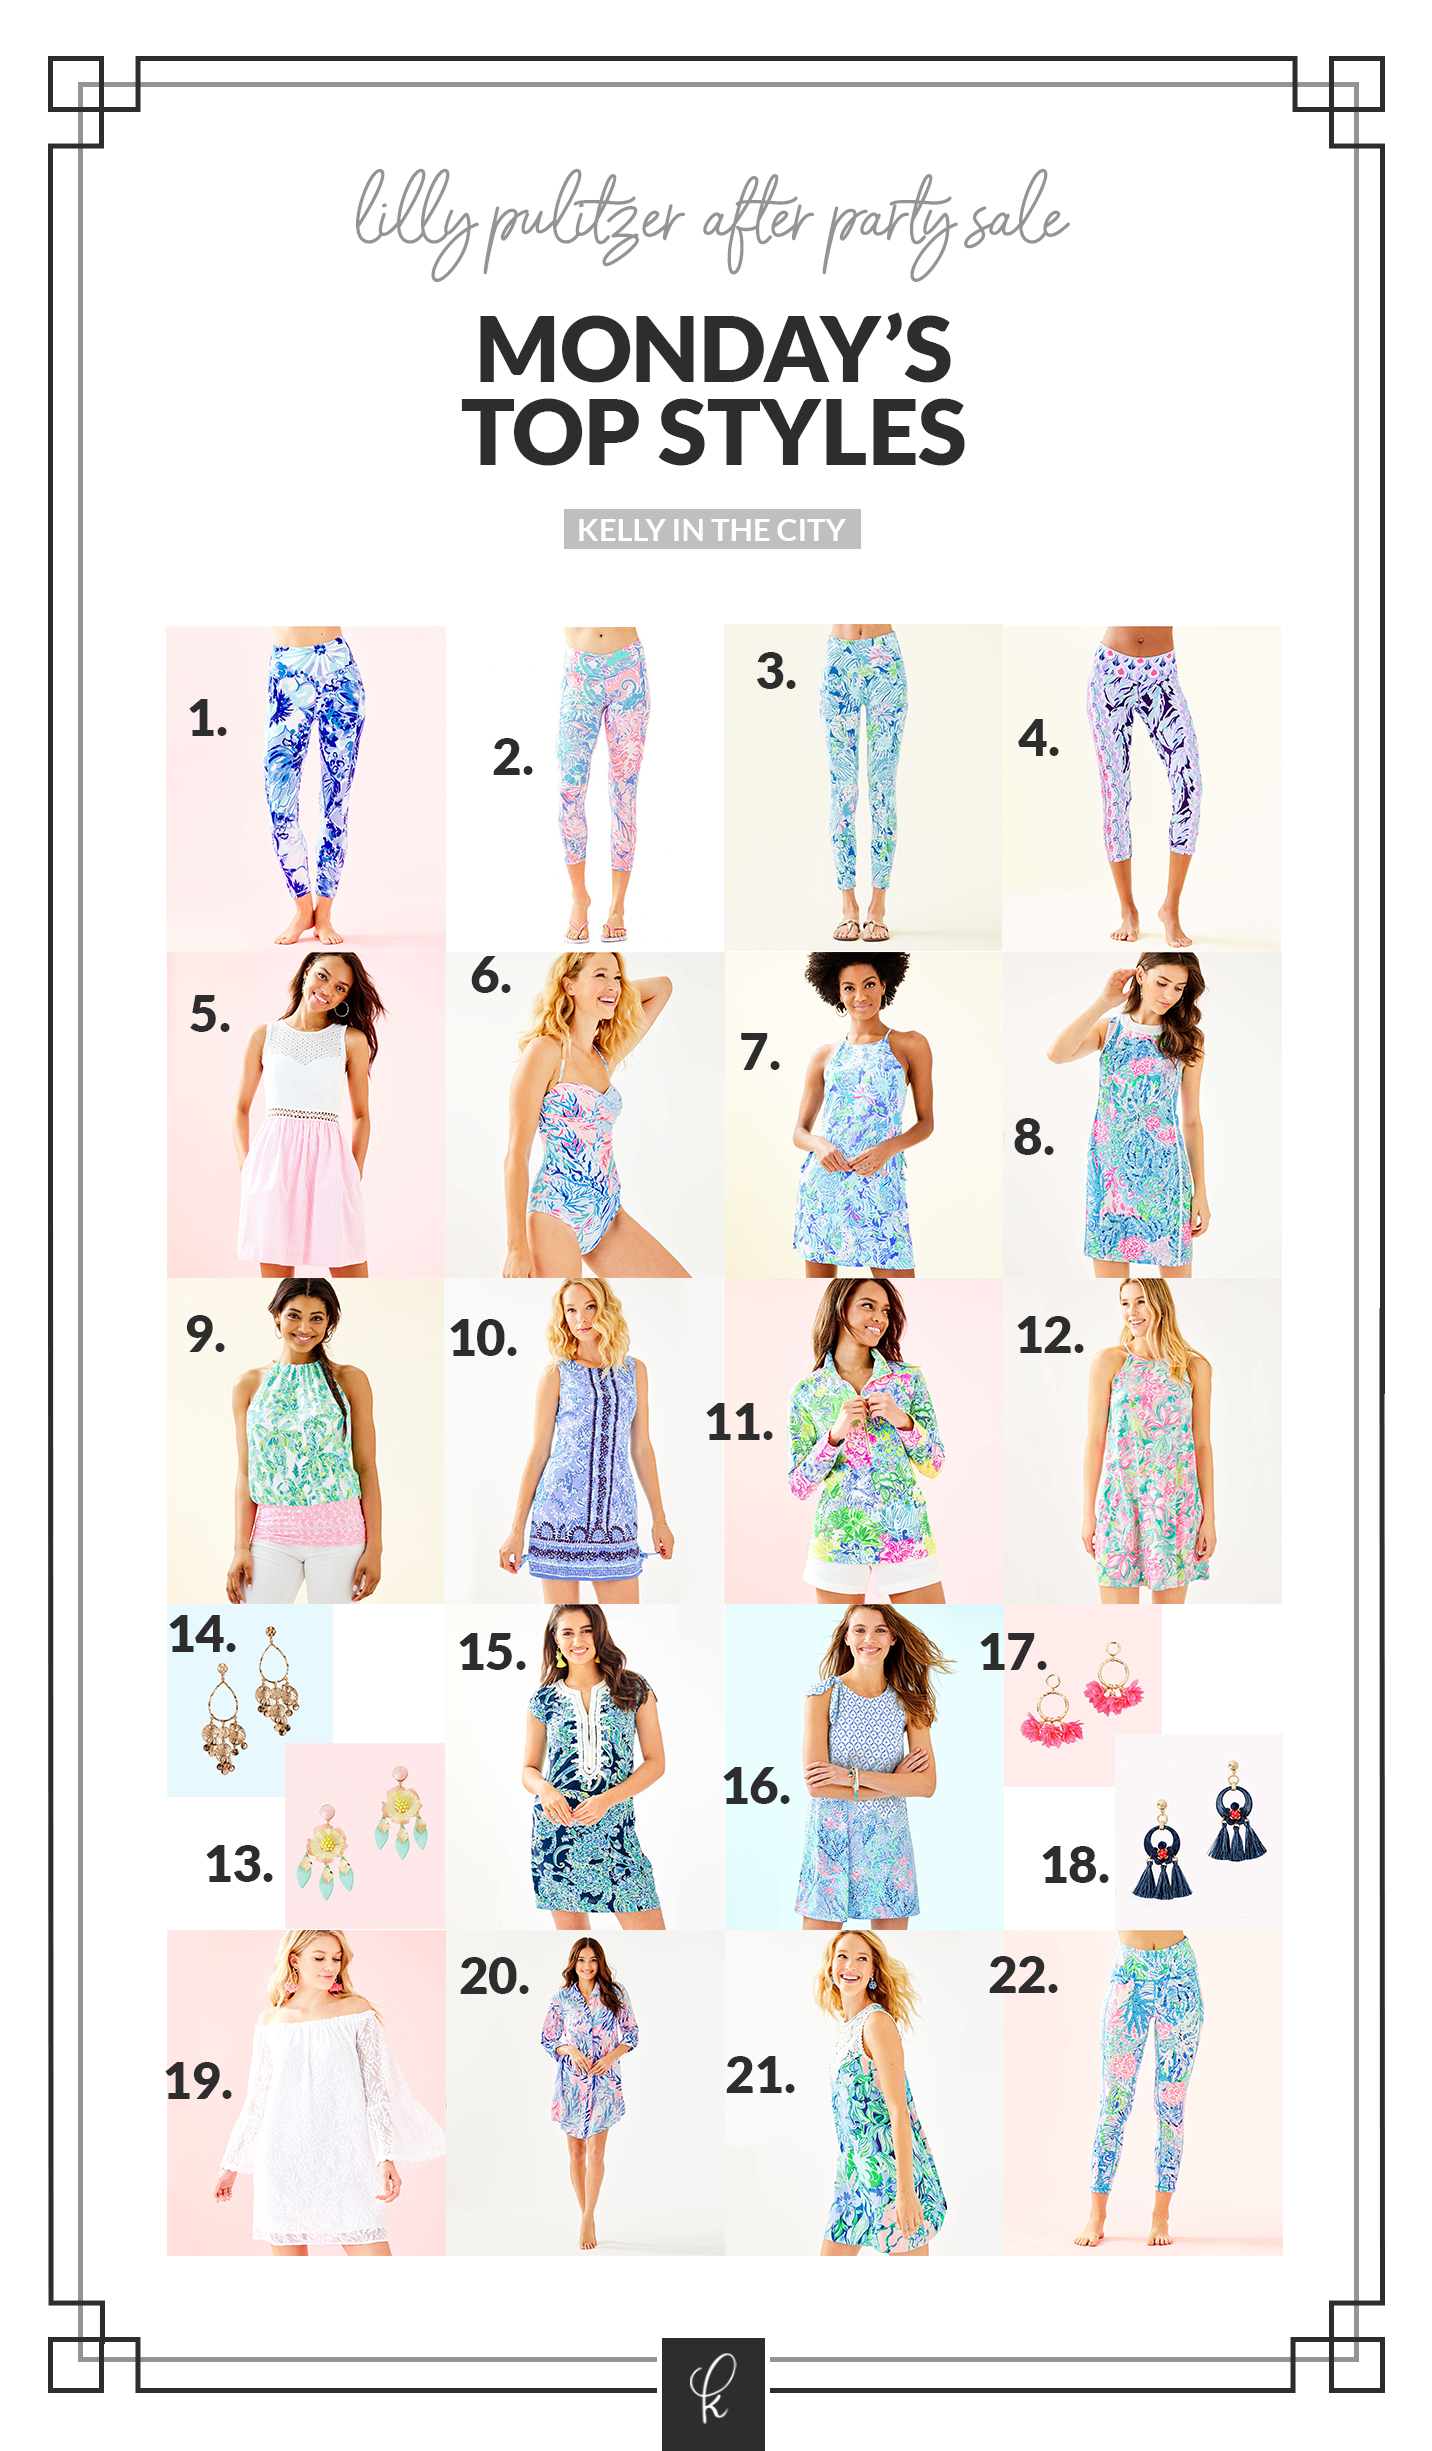 top styles for Lilly Pulitzer After Party Sale Dates